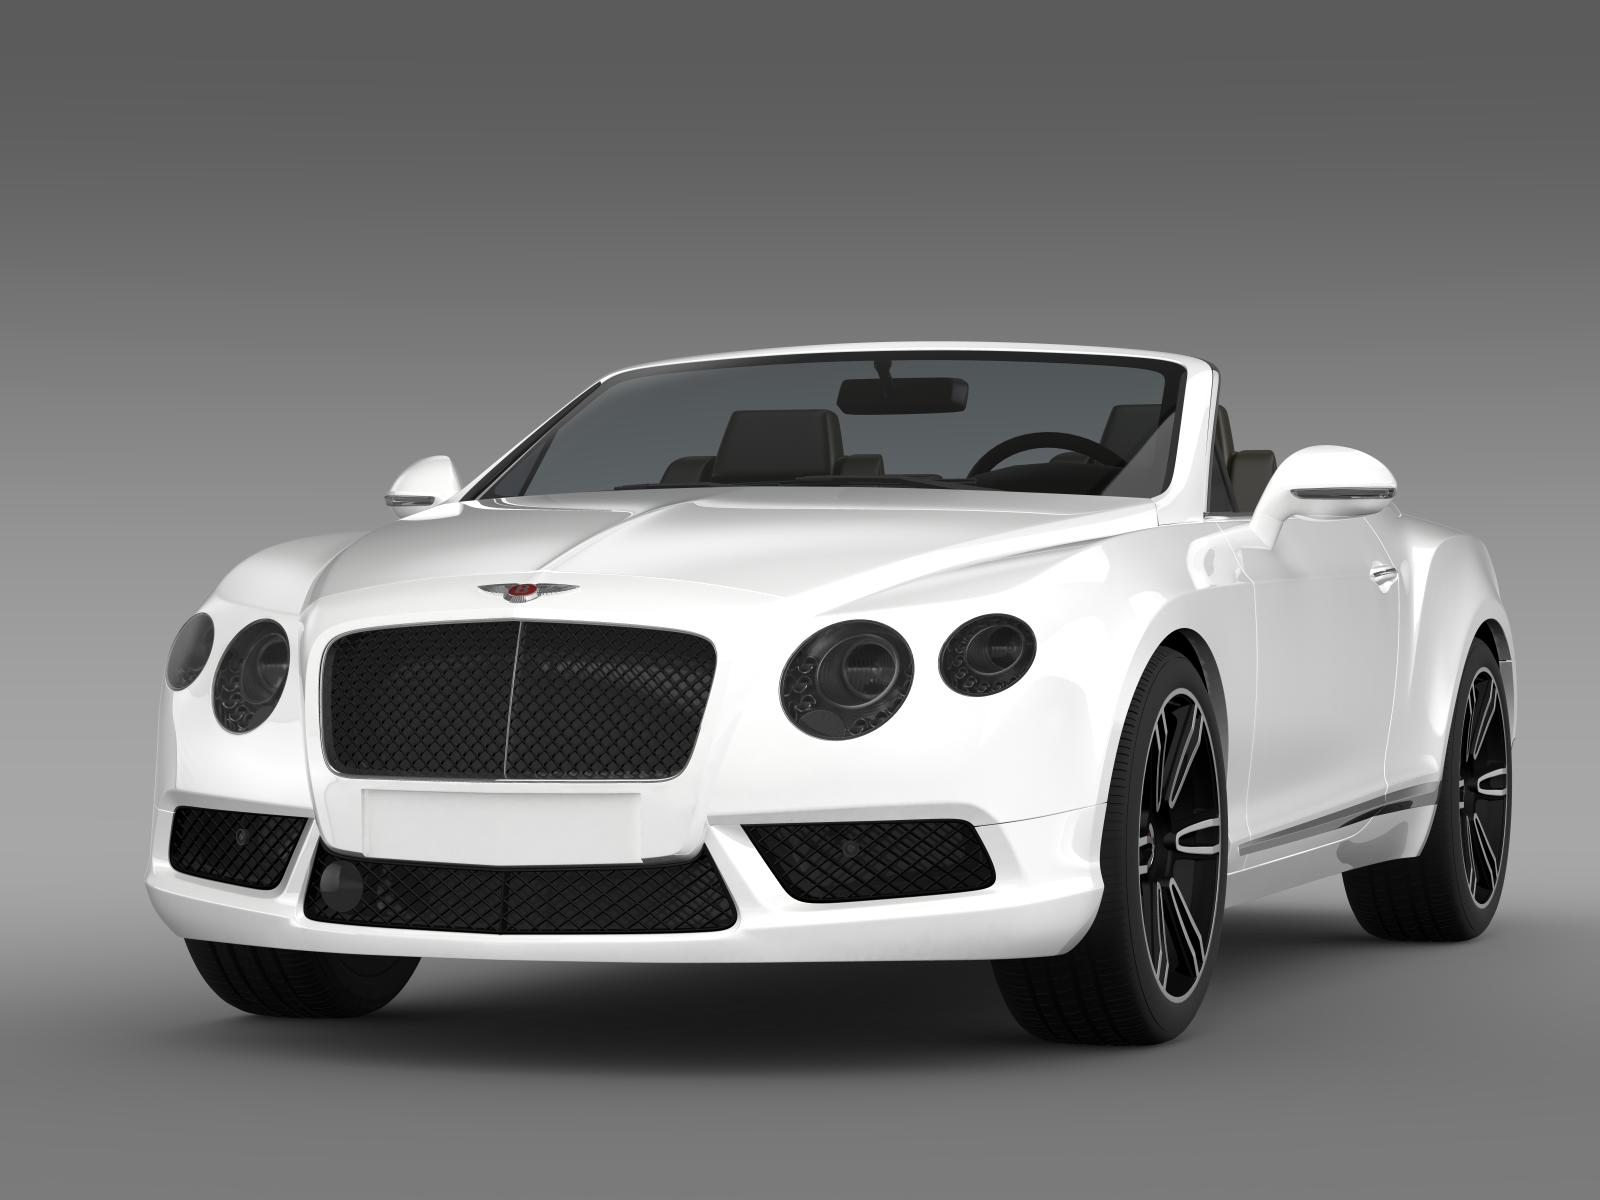 2013 bentley continental gtc v8 3d model 3ds max fbx c4d lwo ma mb hrc xsi obj 164077